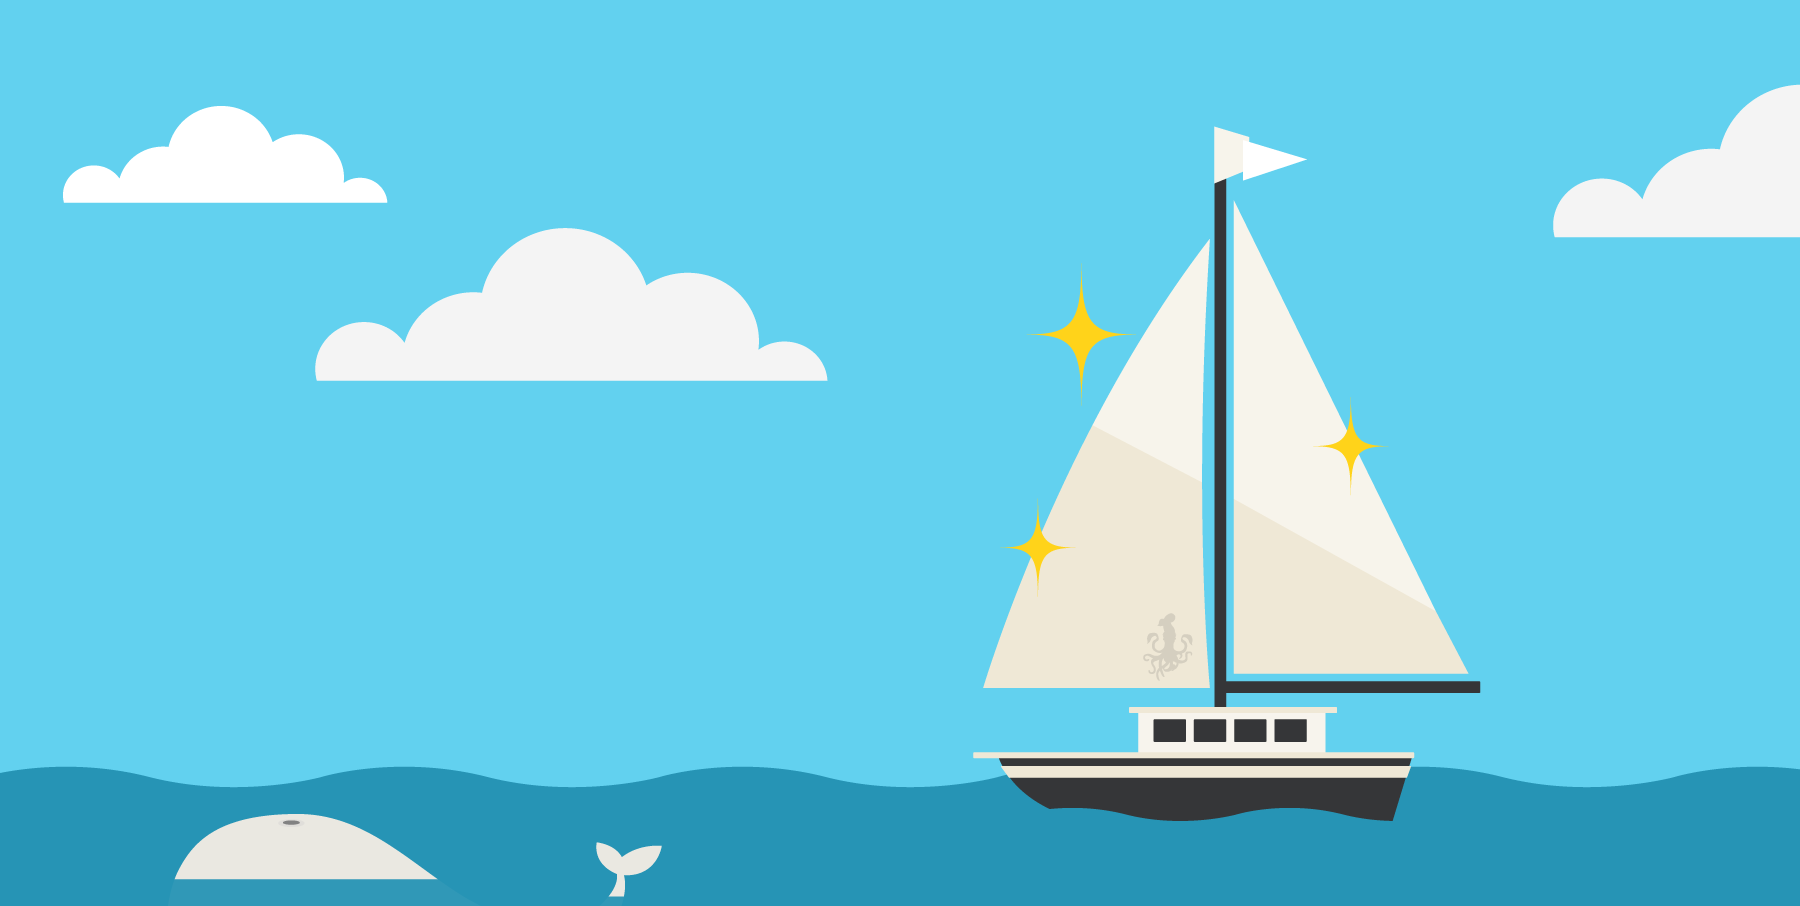 New sails illustration